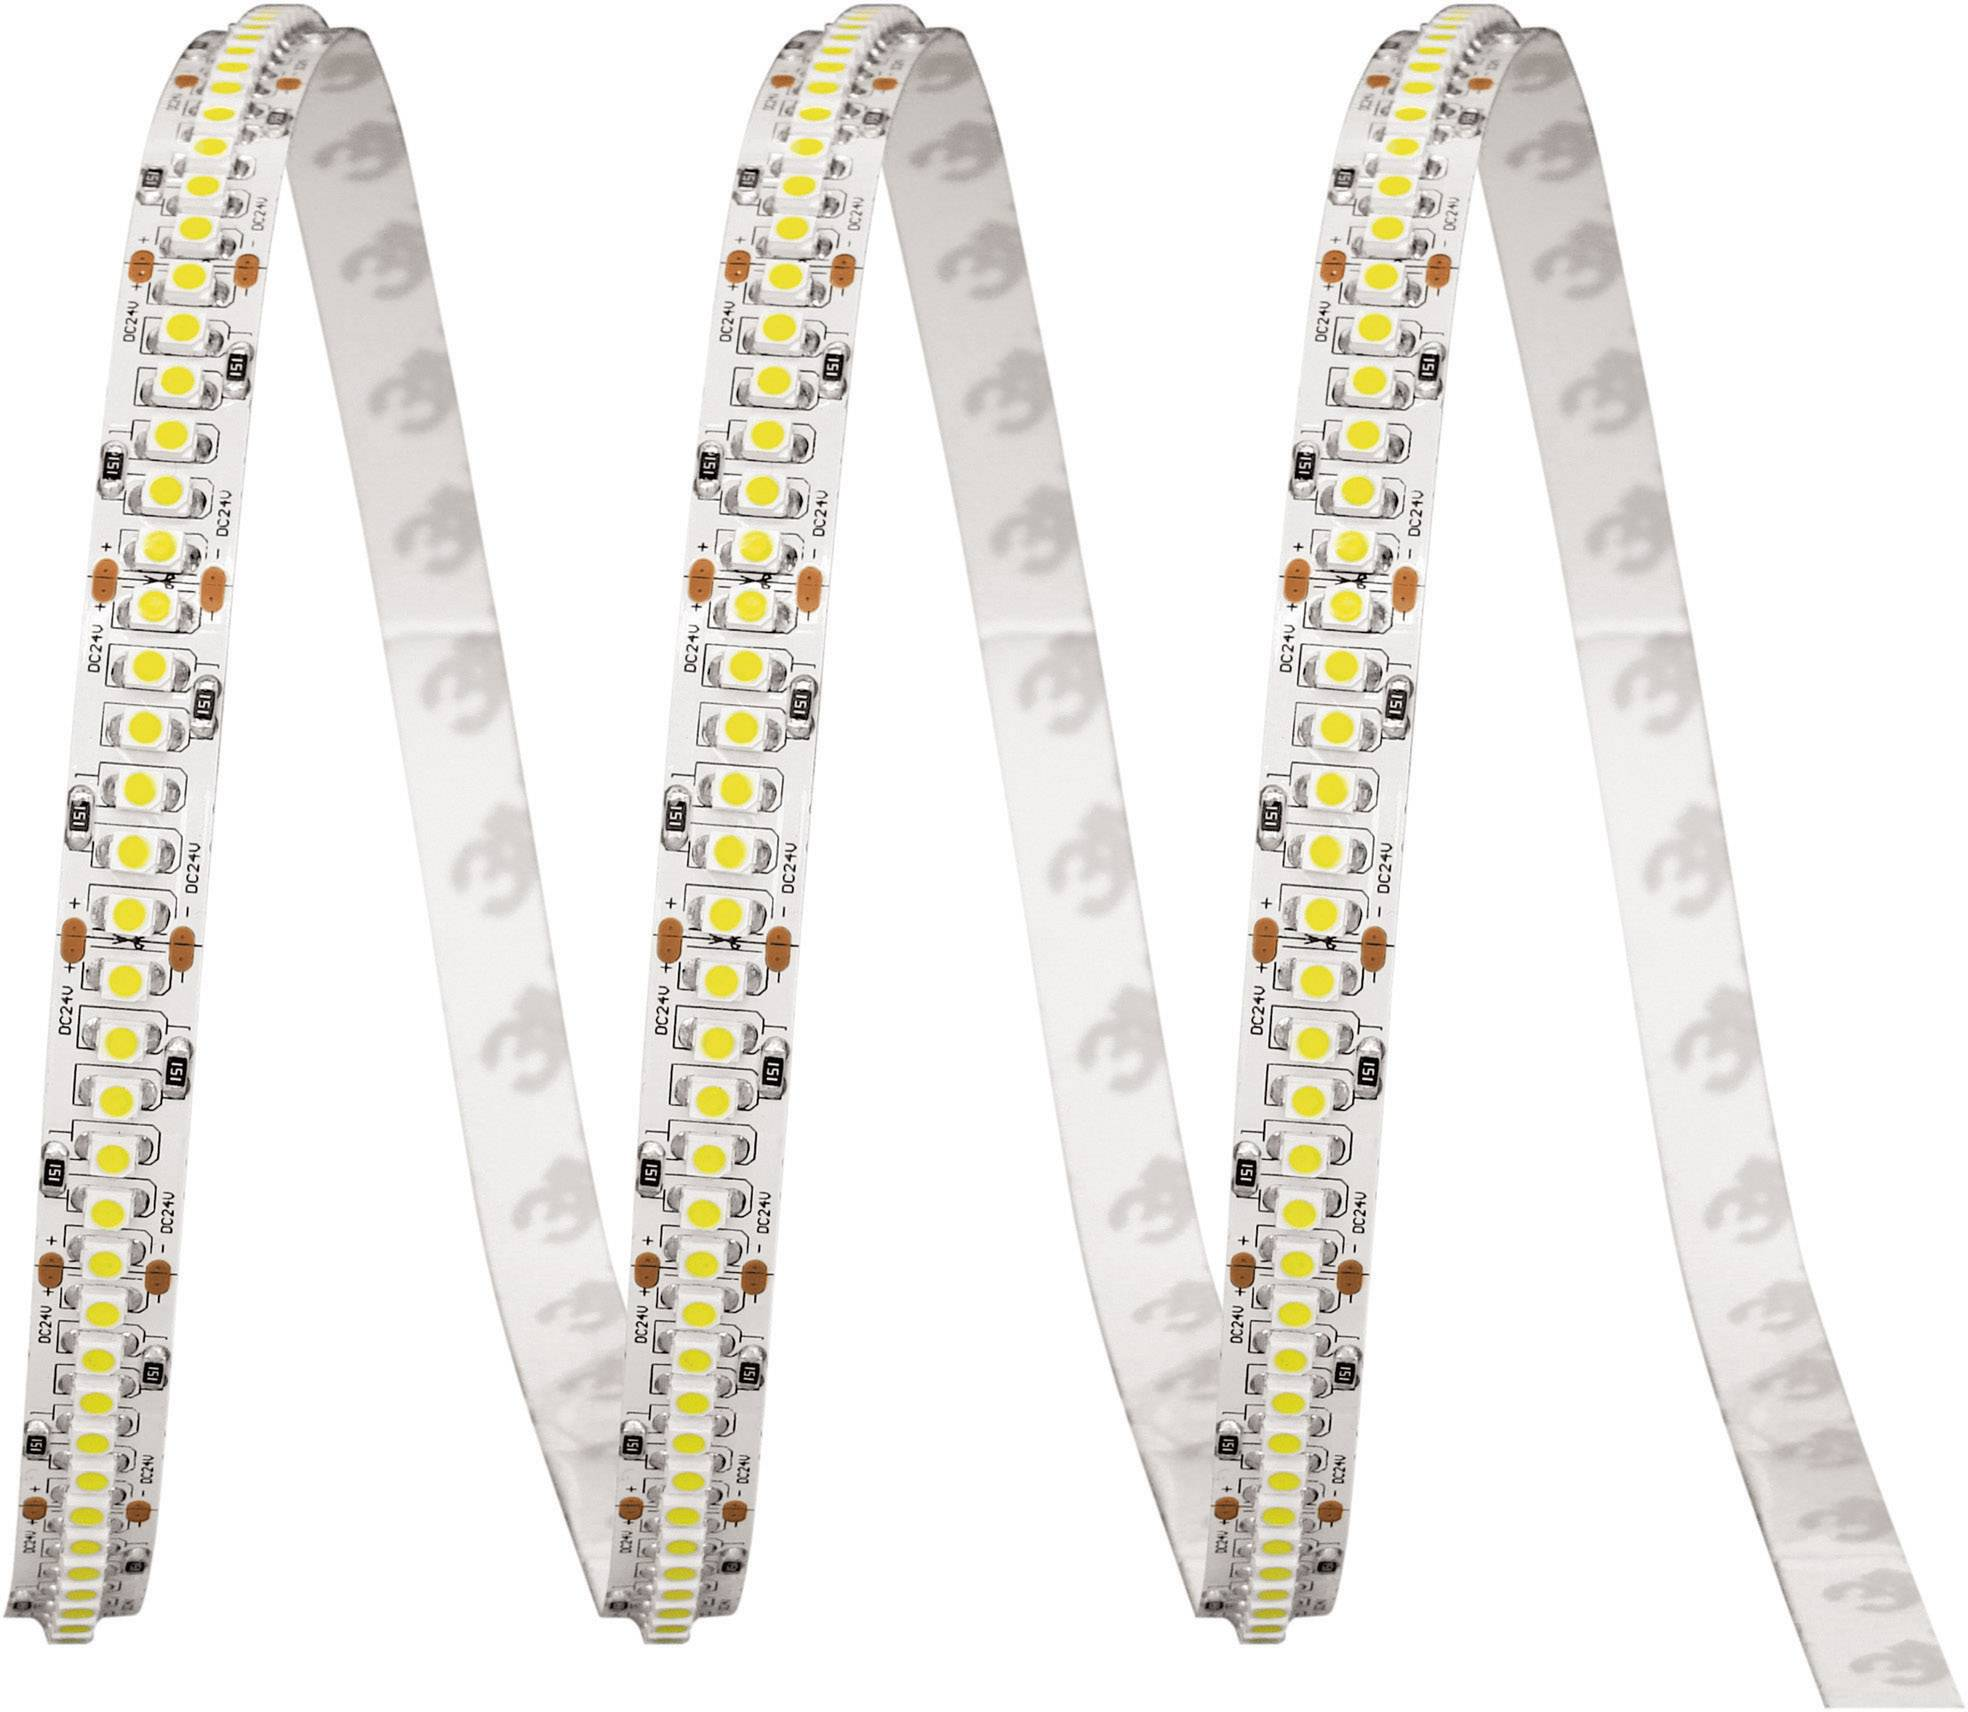 LED pás ohebný samolepicí 24VDC ledxon High Power Multi SMD Band, 9009062, 25 mm, modrá